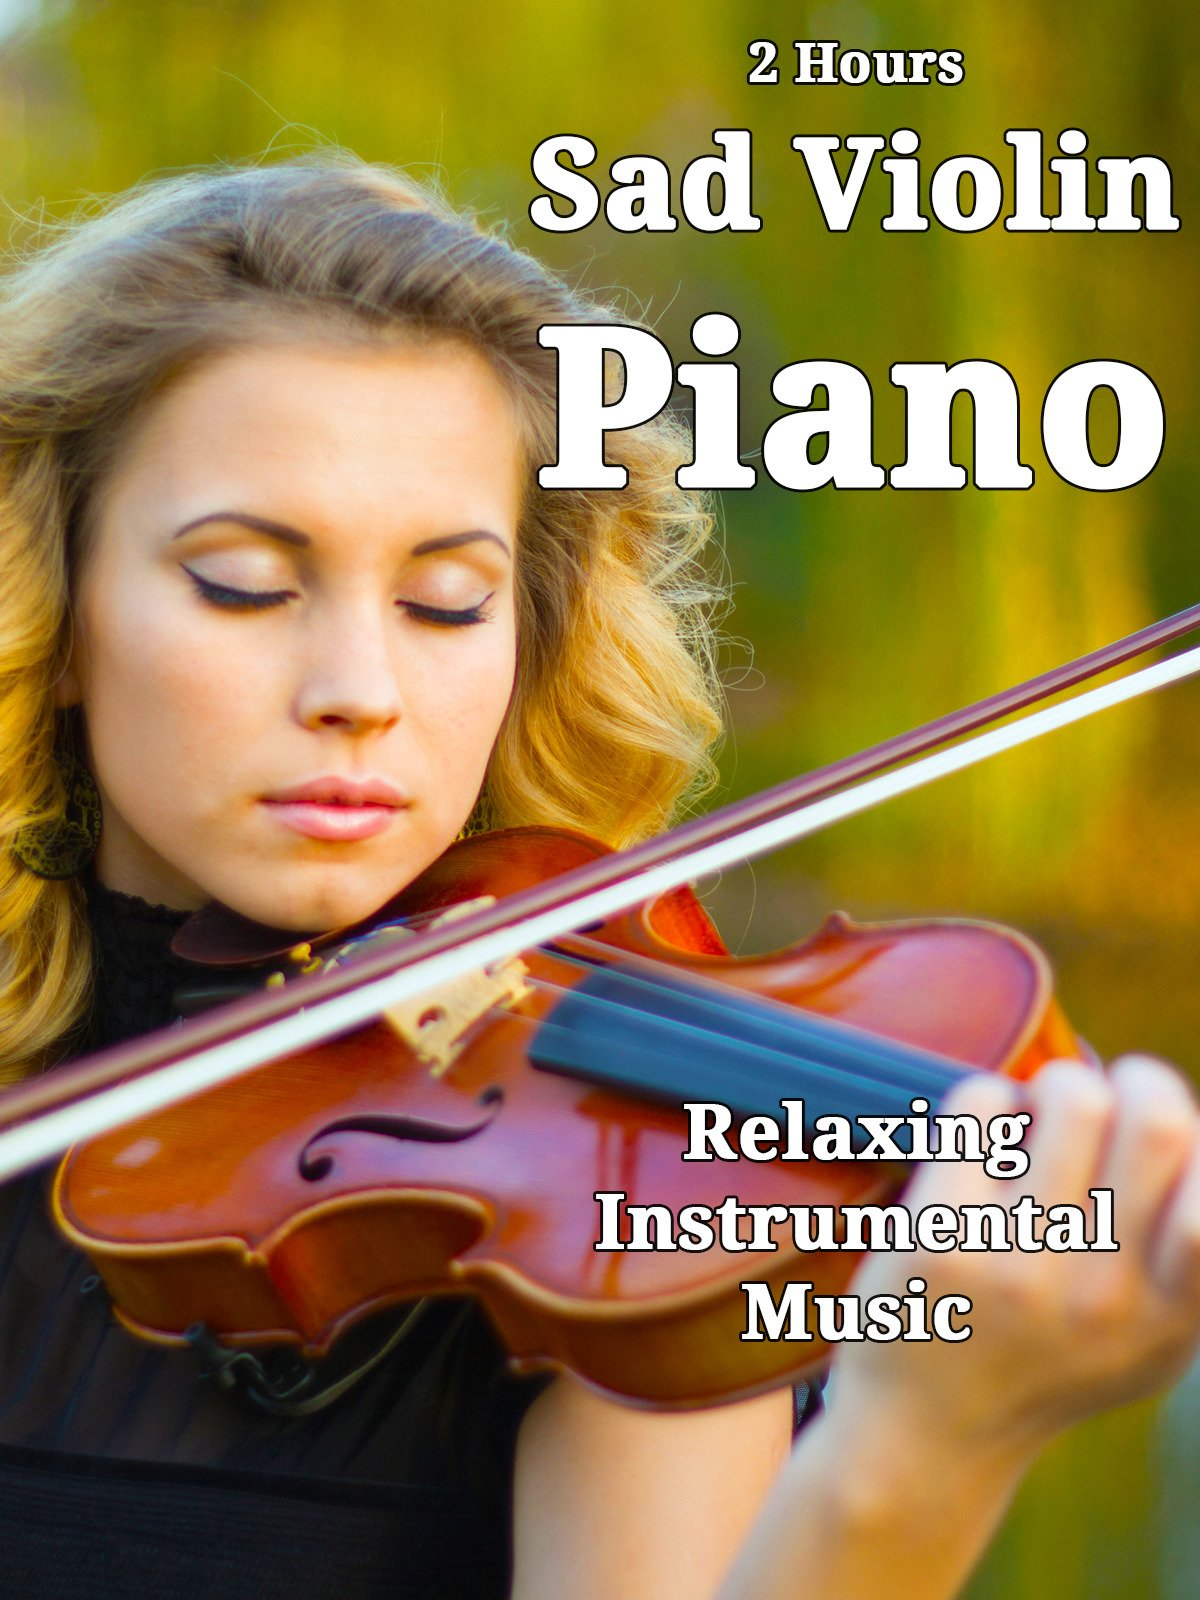 Amazon co uk: Watch 2 Hours Sad Violin and Piano - Relaxing